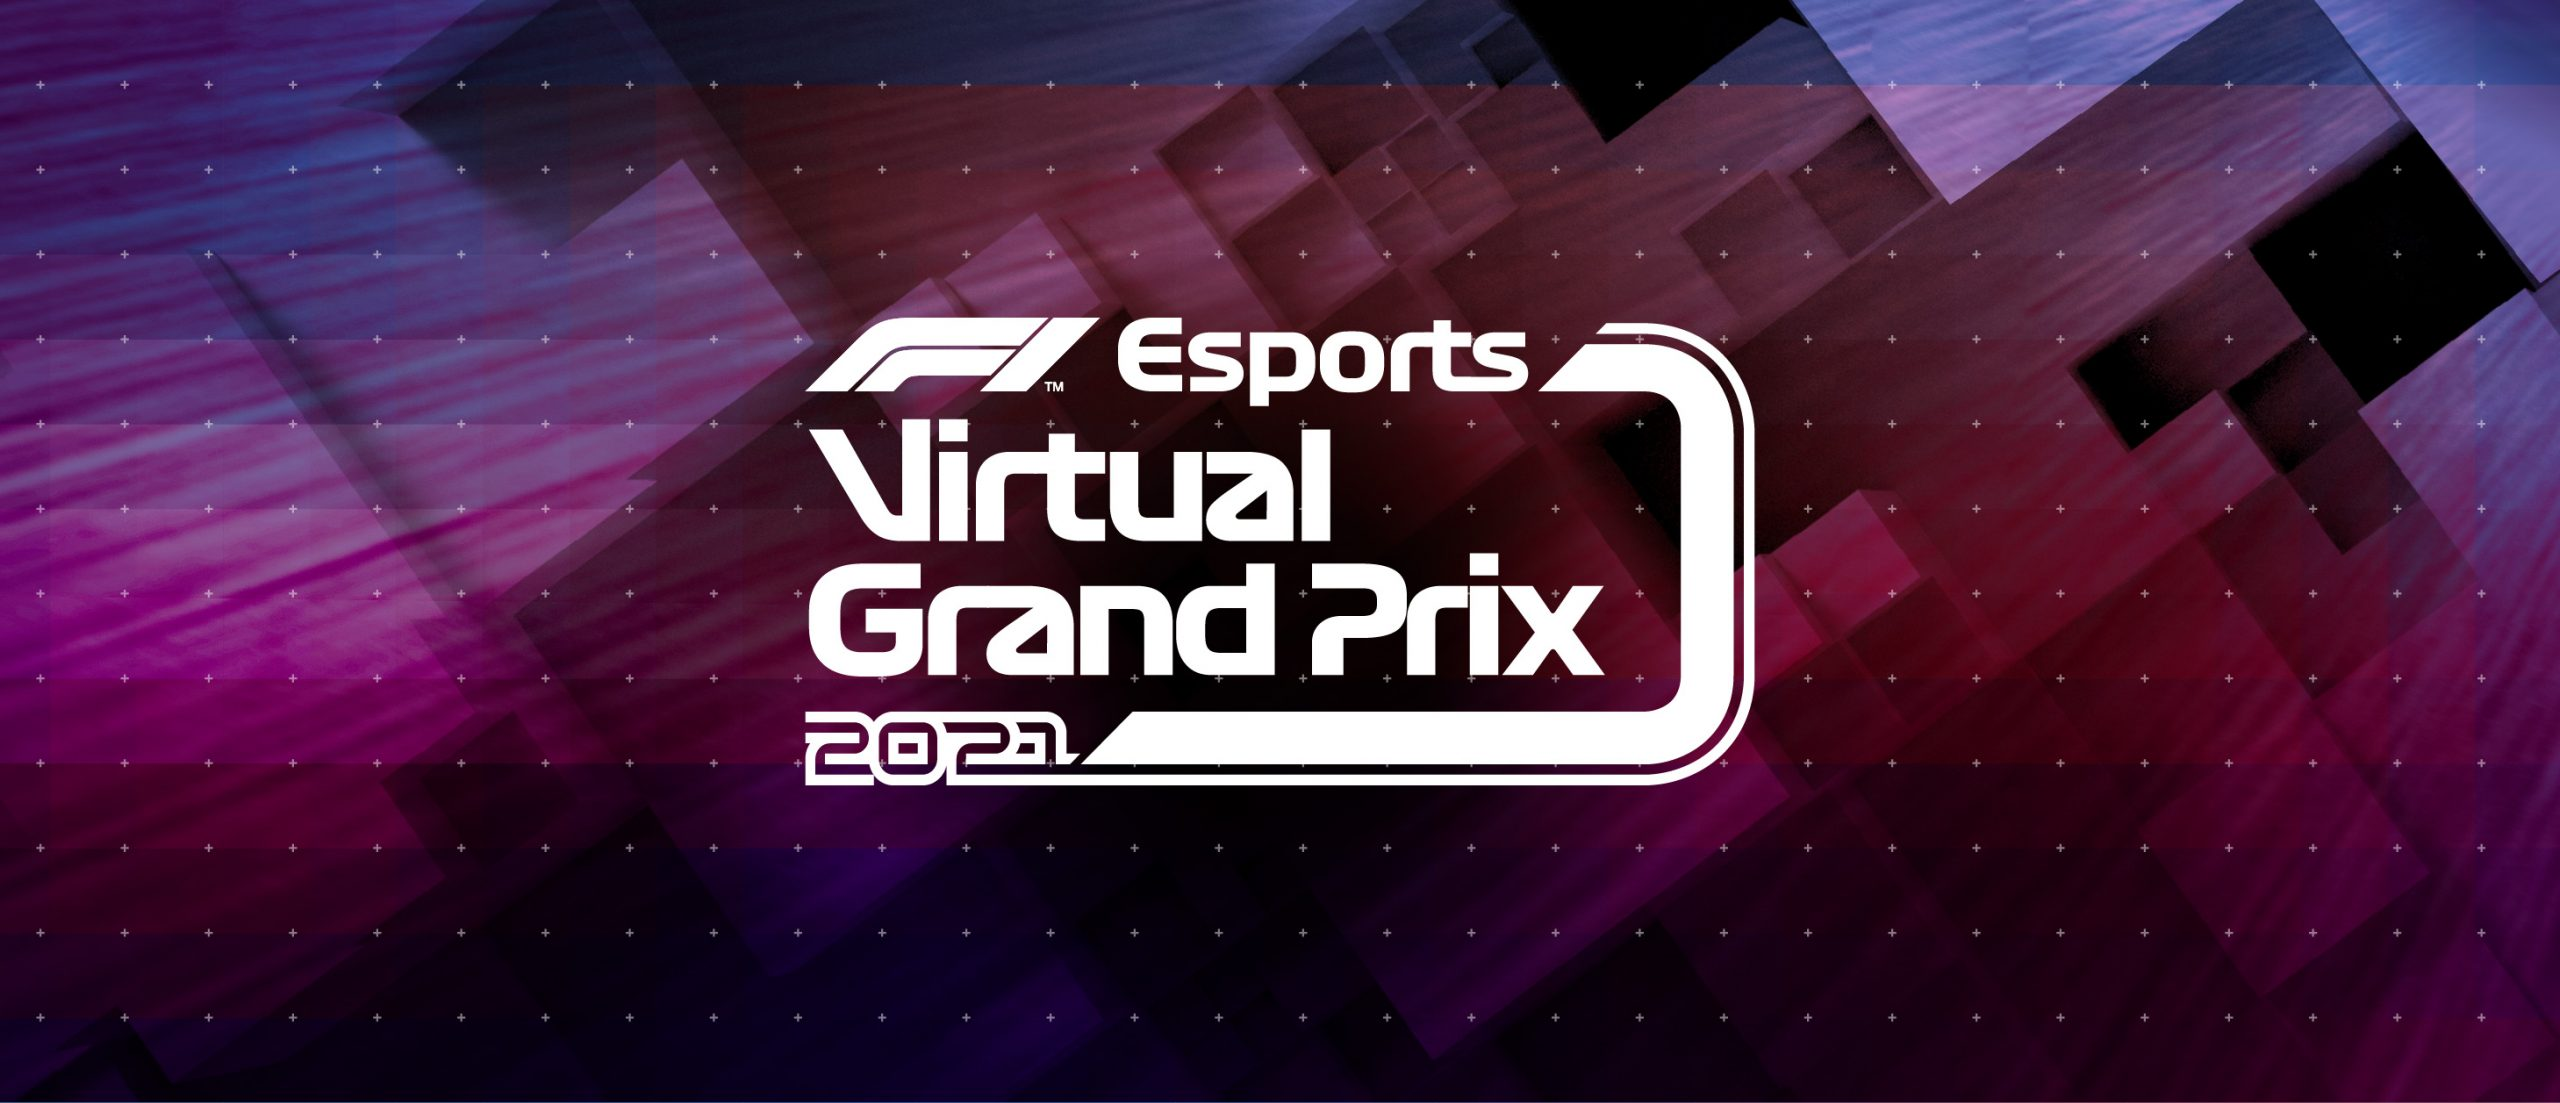 Virtual Grand Prix Series Returns for 2021!